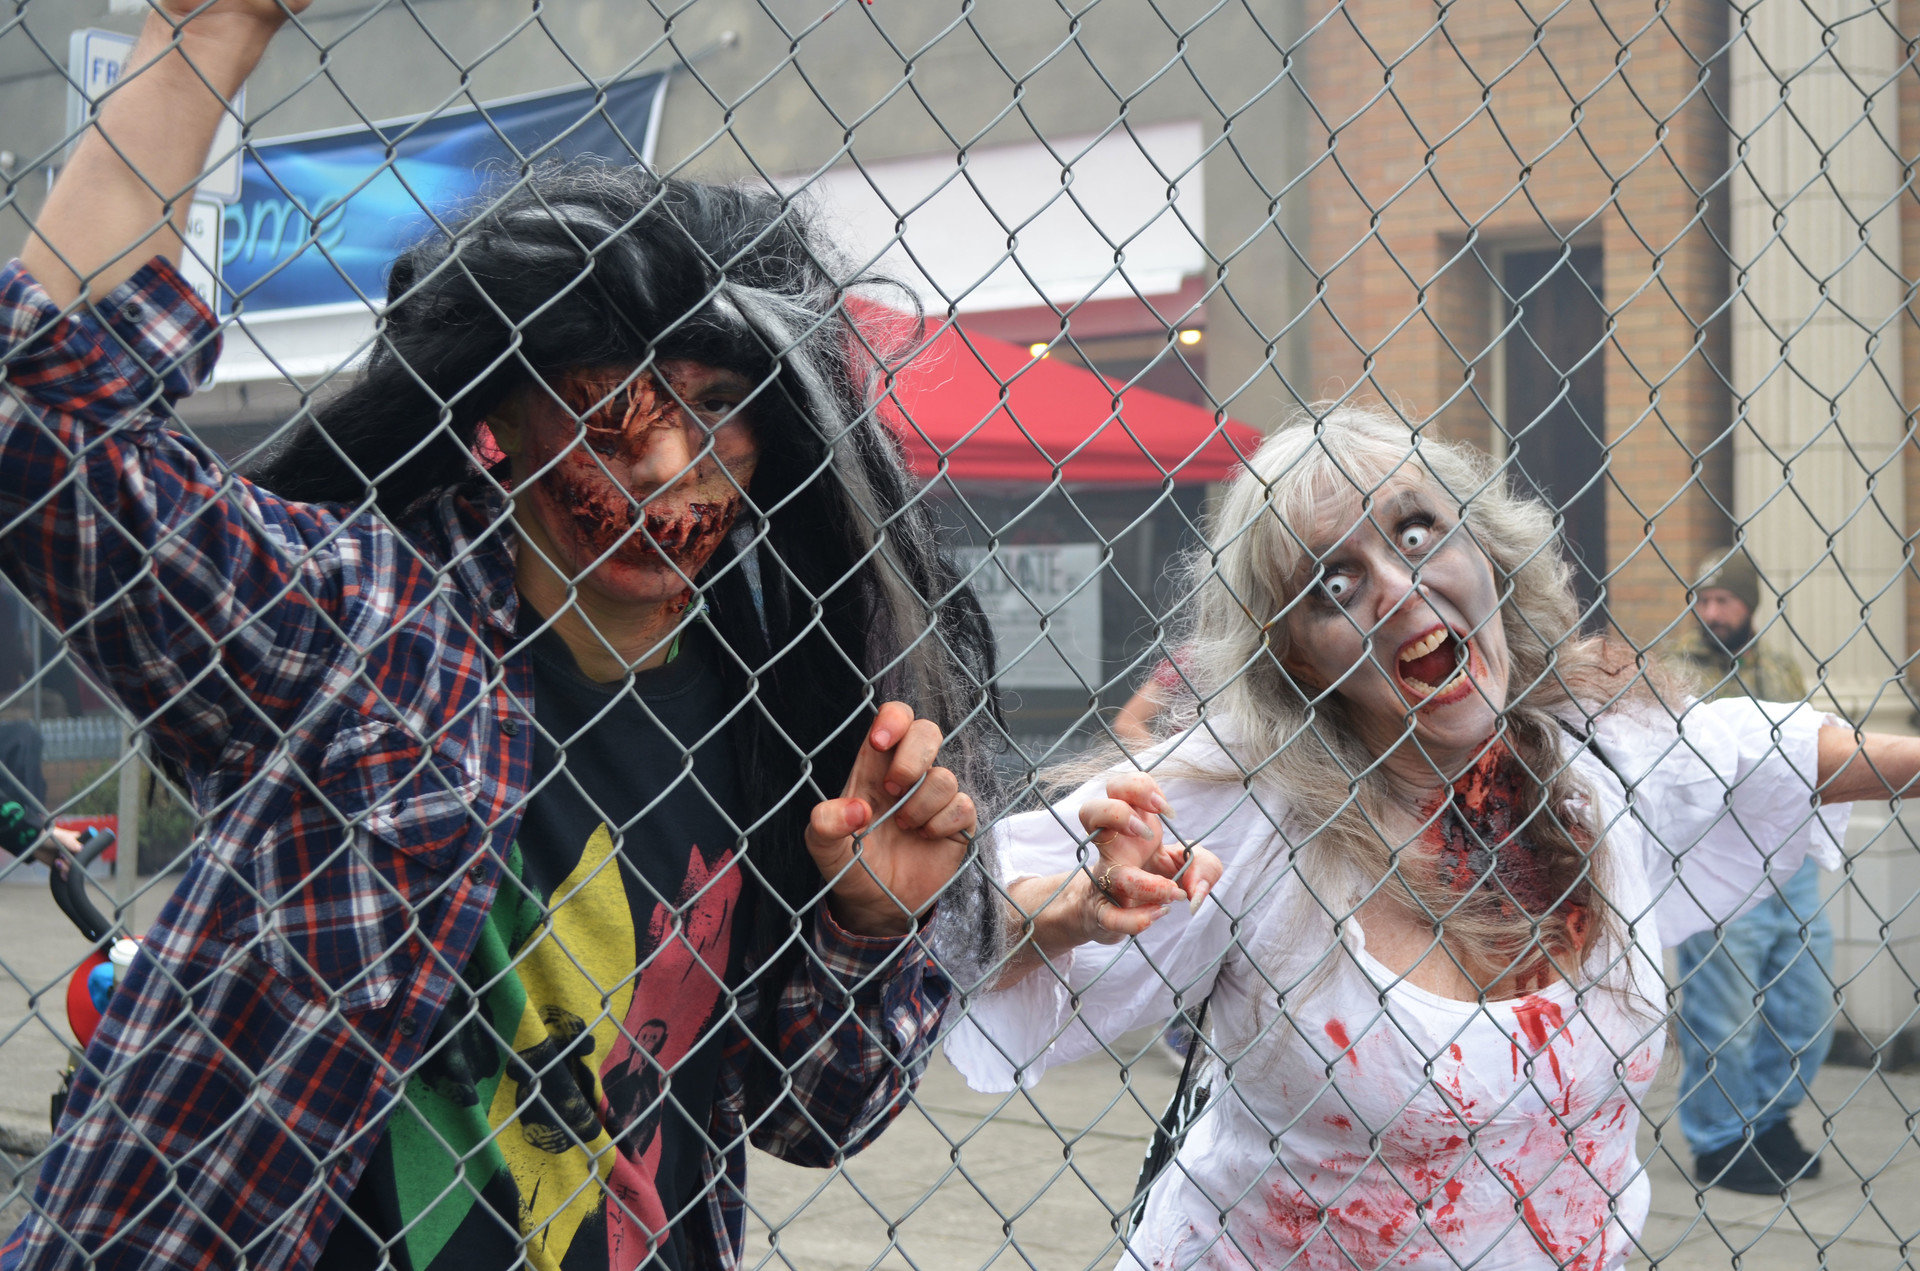 costume Fence festival festive fun halloween holiday parade people scary Trip Ideas person child interaction